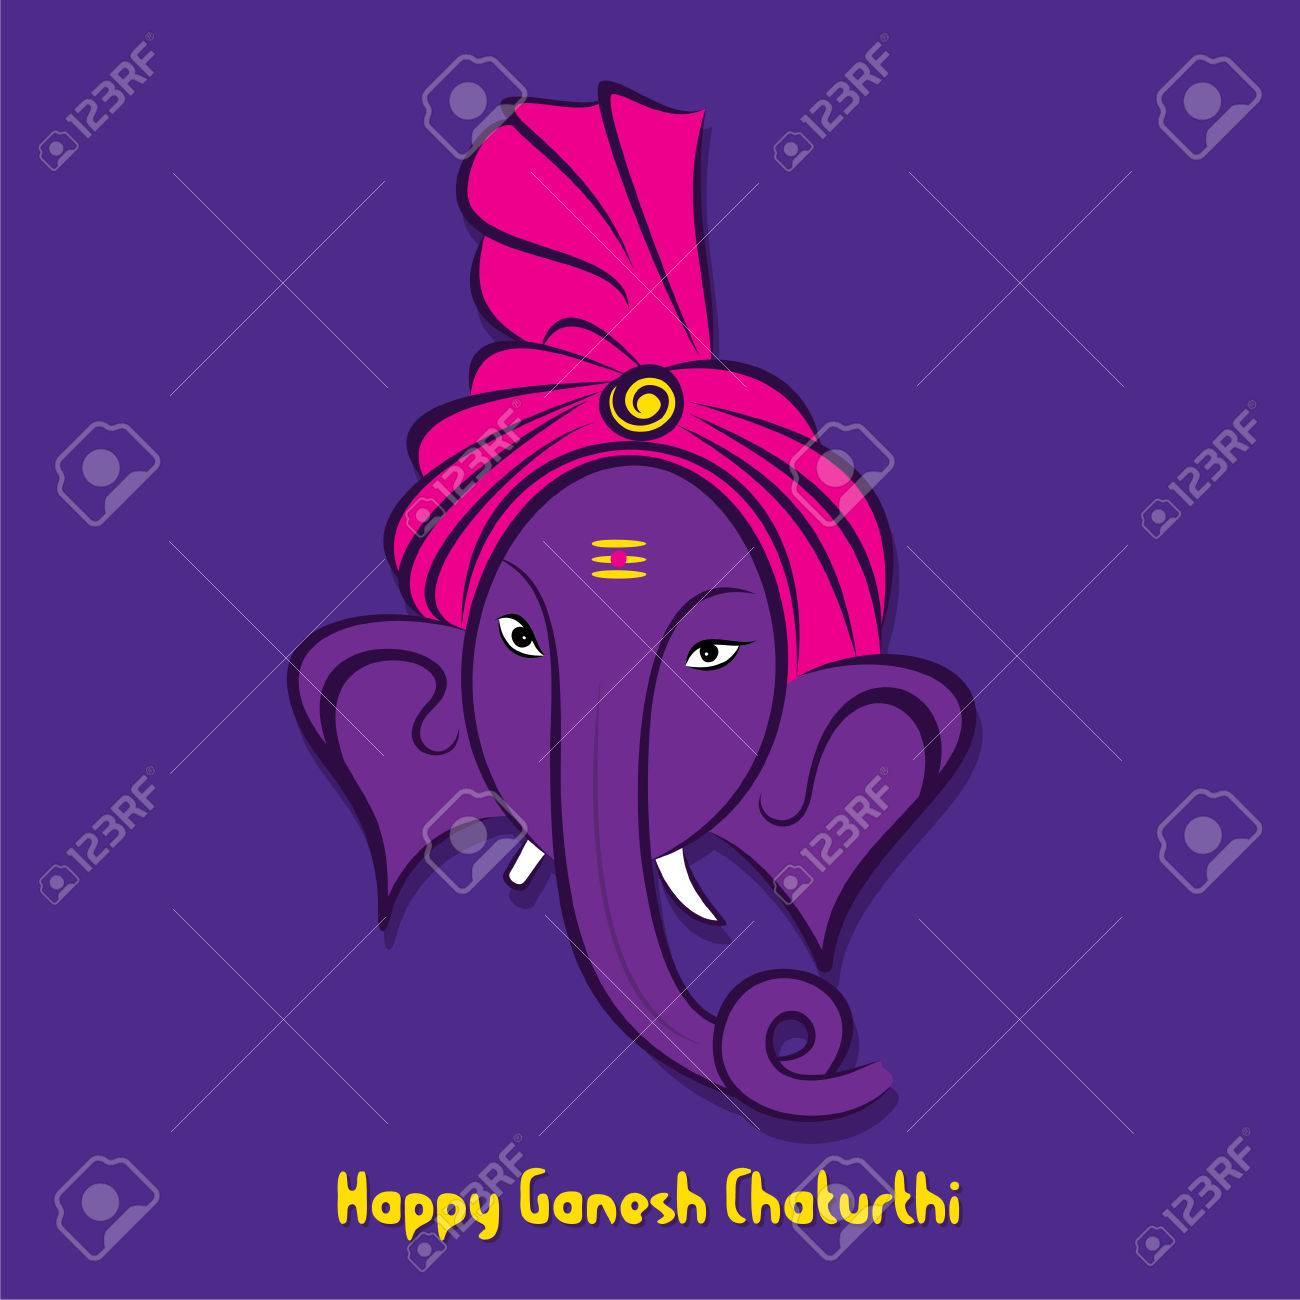 Creative happy ganesha chaturthi festival greeting card or banner creative happy ganesha chaturthi festival greeting card or banner design vector stock vector 60699725 m4hsunfo